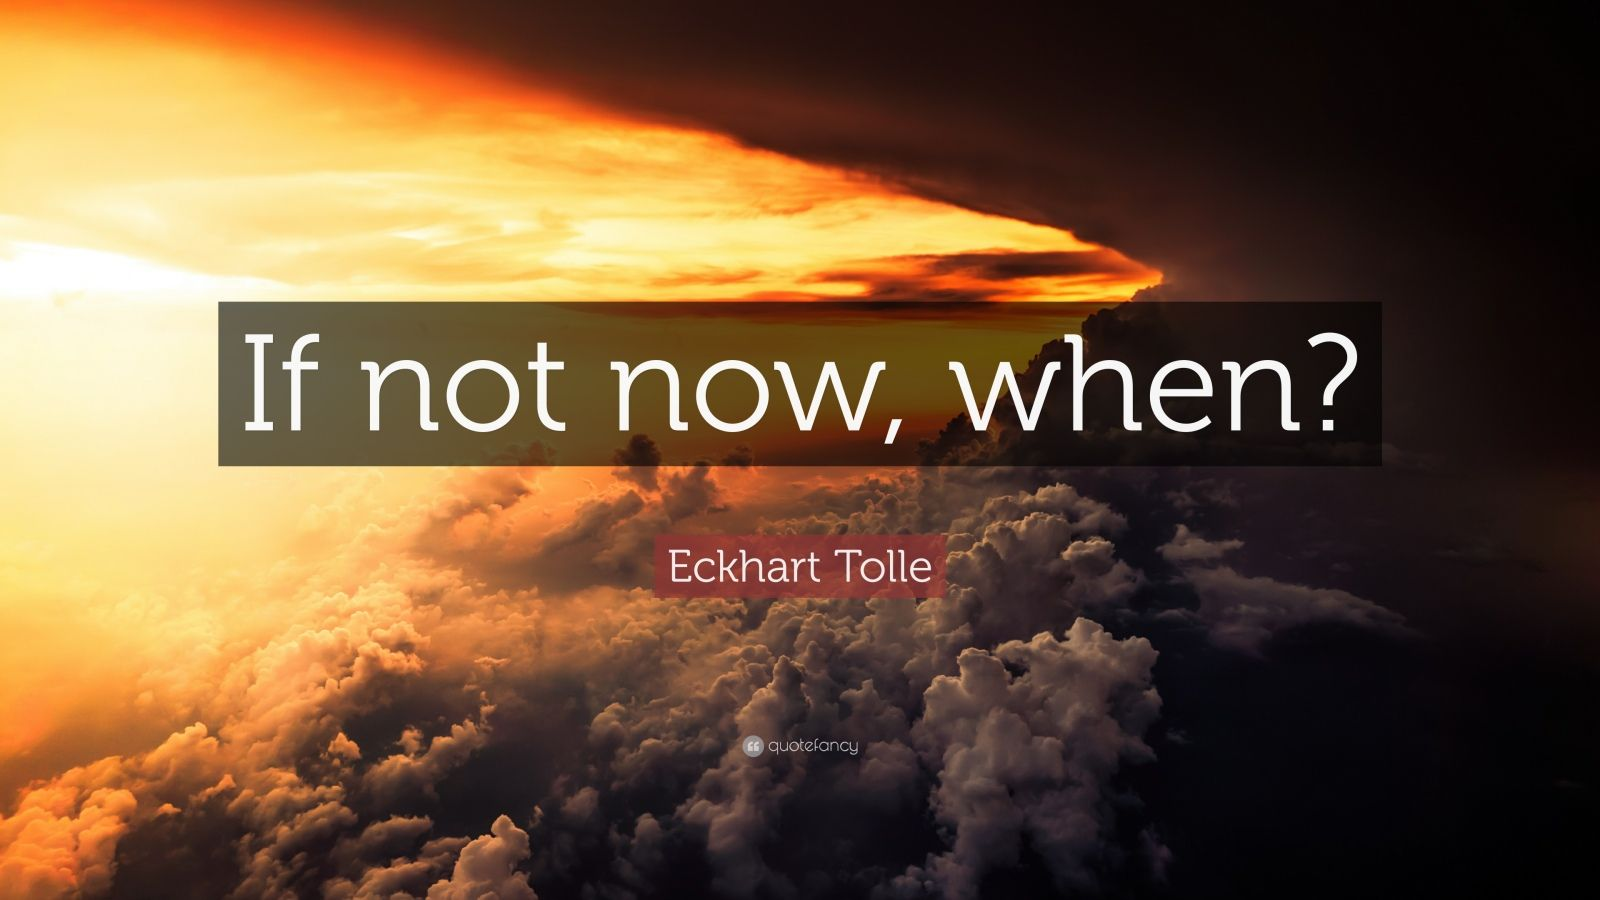 Mother Teresa Quotes Wallpapers Eckhart Tolle Quote If Not Now When 23 Wallpapers